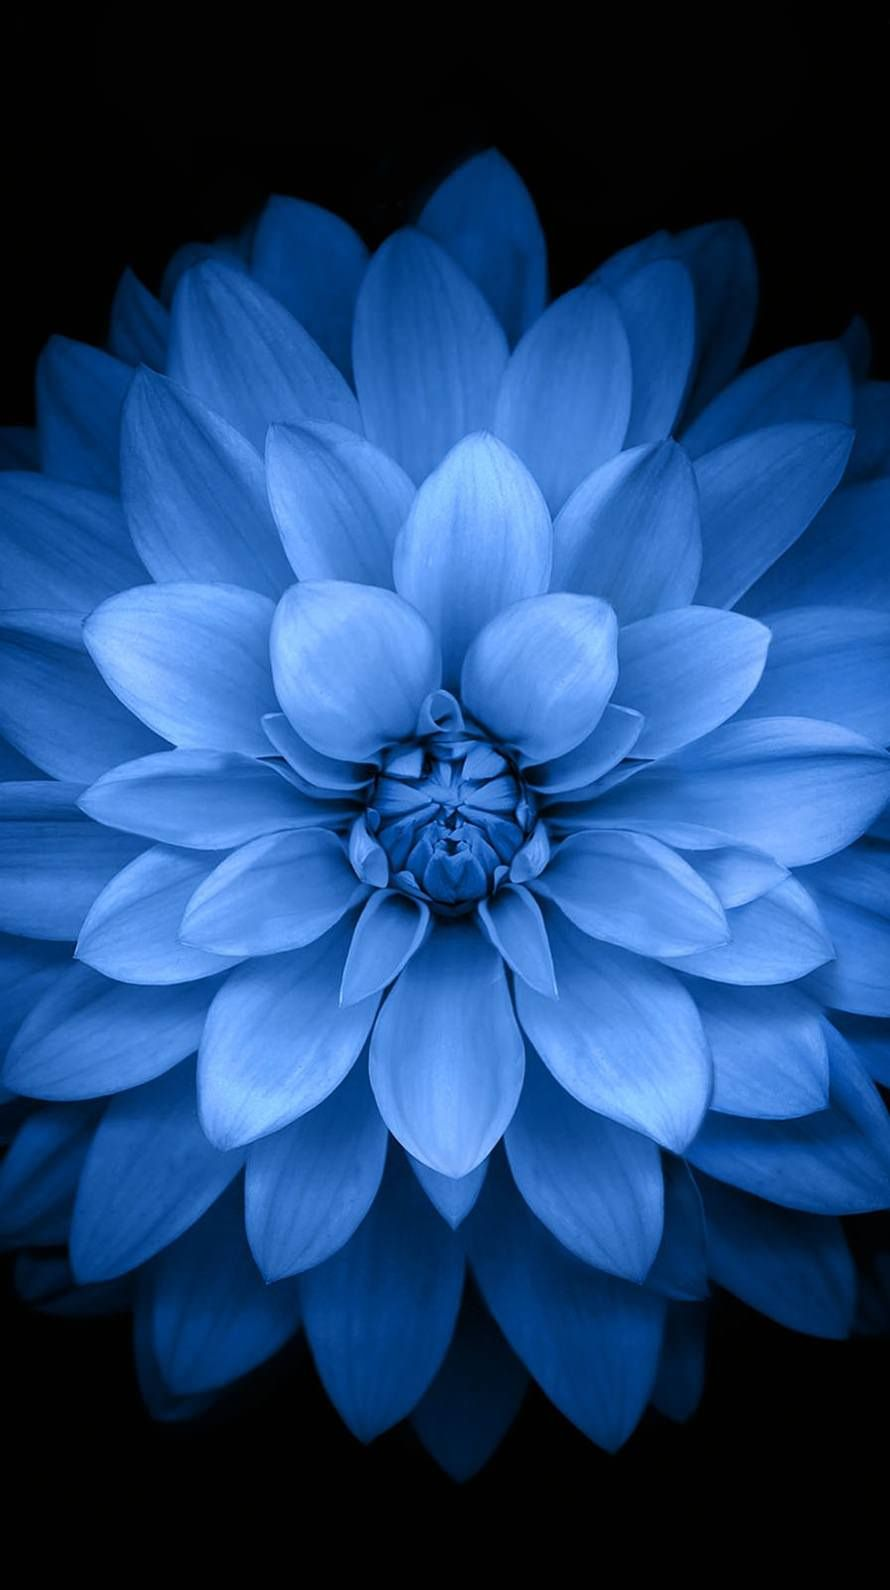 Blue Black Flower Wallpaper Sc Iphone6 Flower Iphone Wallpaper Blue Flower Wallpaper Blue Wallpaper Iphone